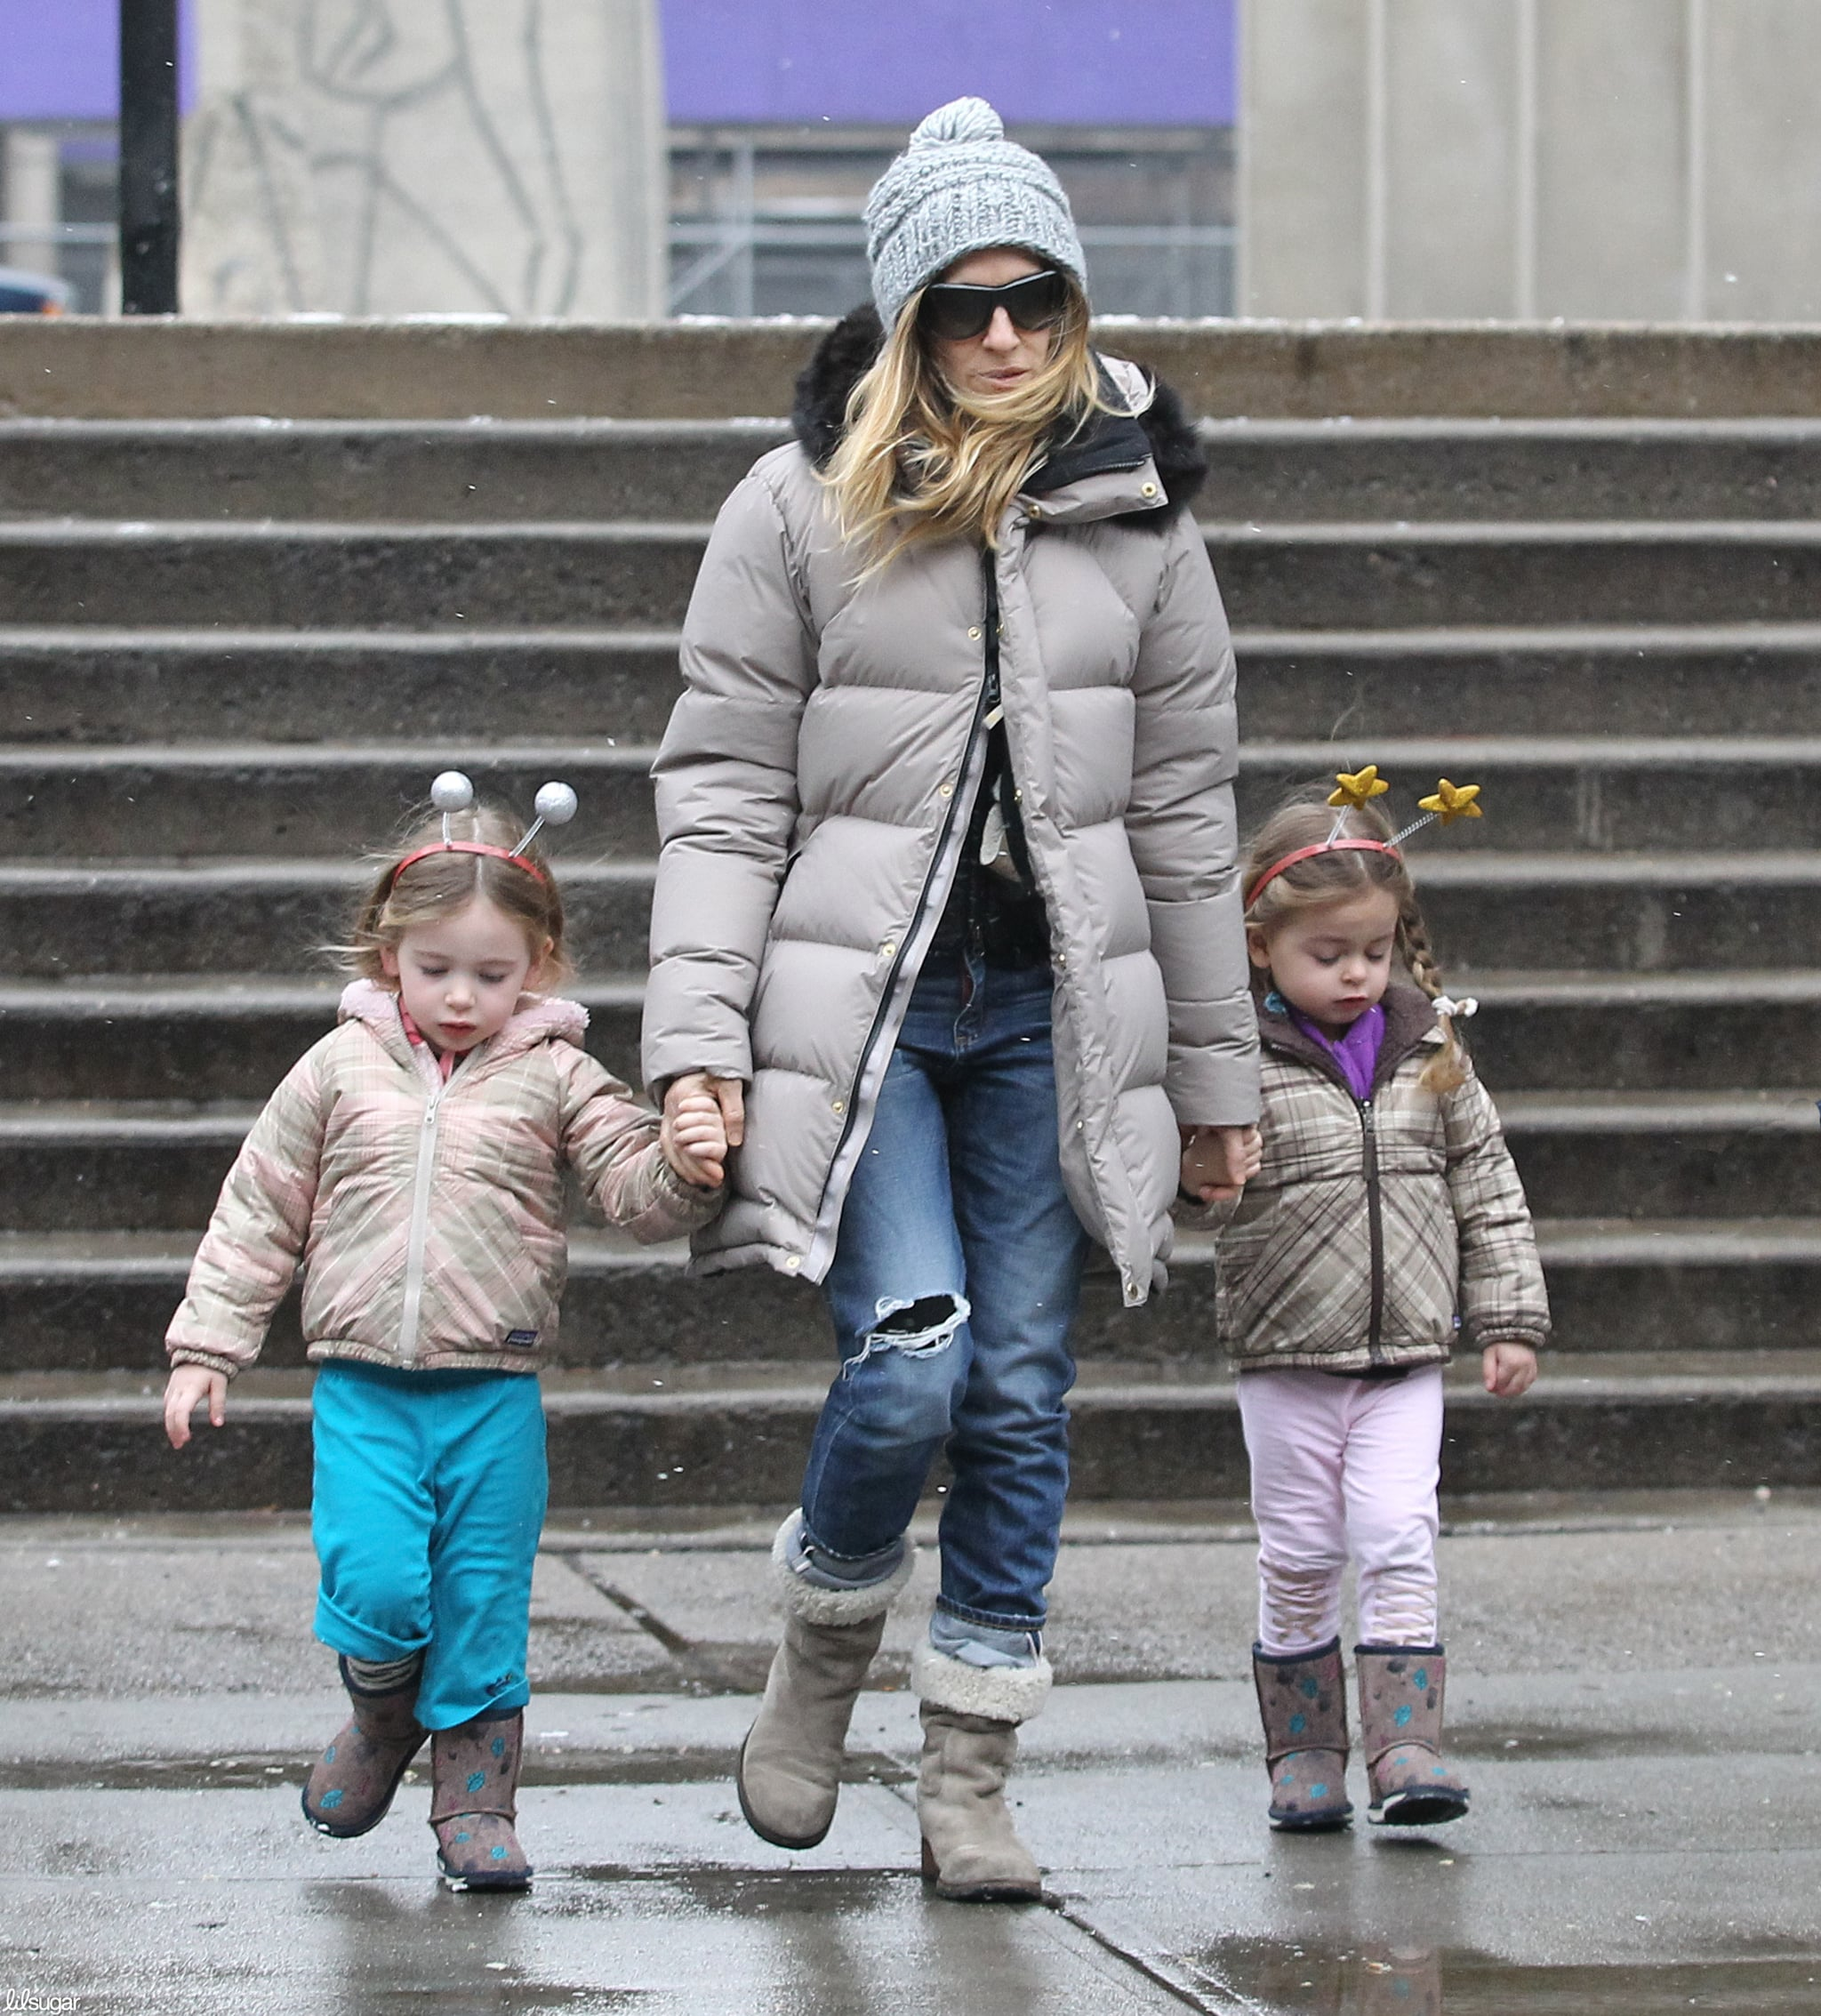 Sarah Jessica Parker took her girls, Loretta Broderick and Tabitha Broderick, out in NYC on Monday.